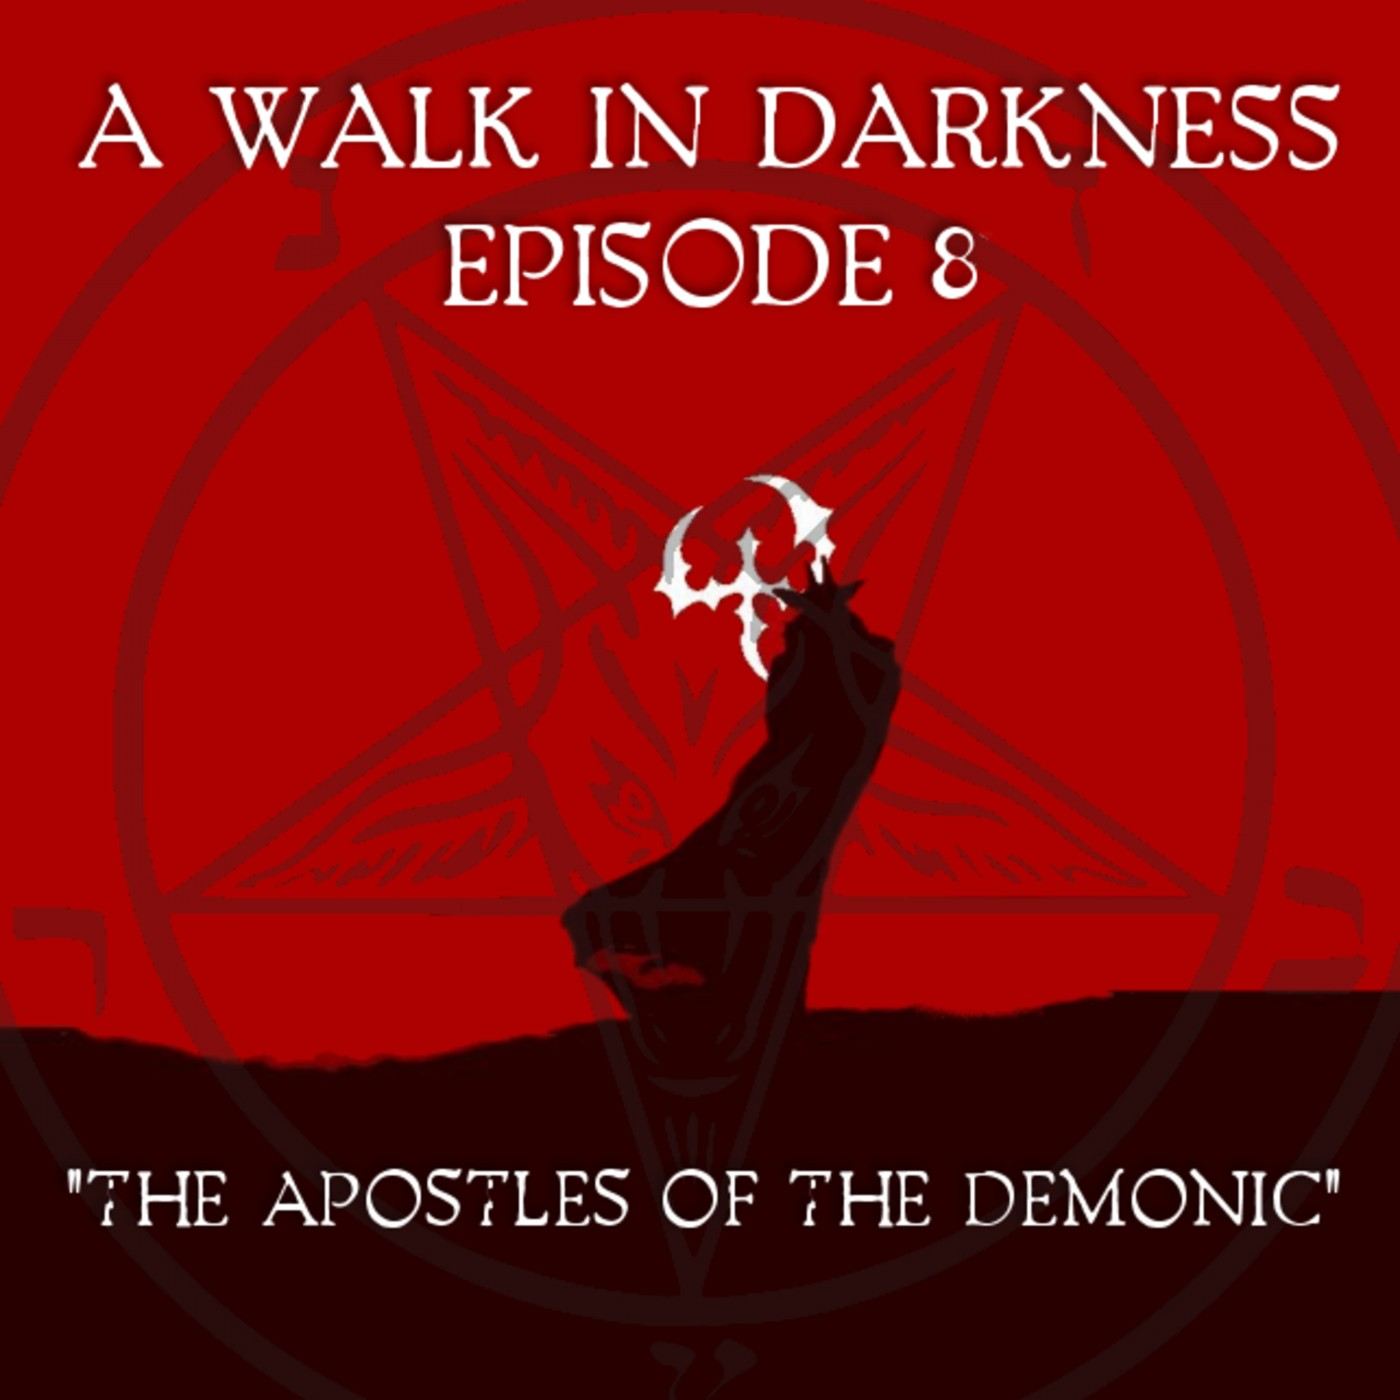 The Apostles of the Demonic (Episode 8)